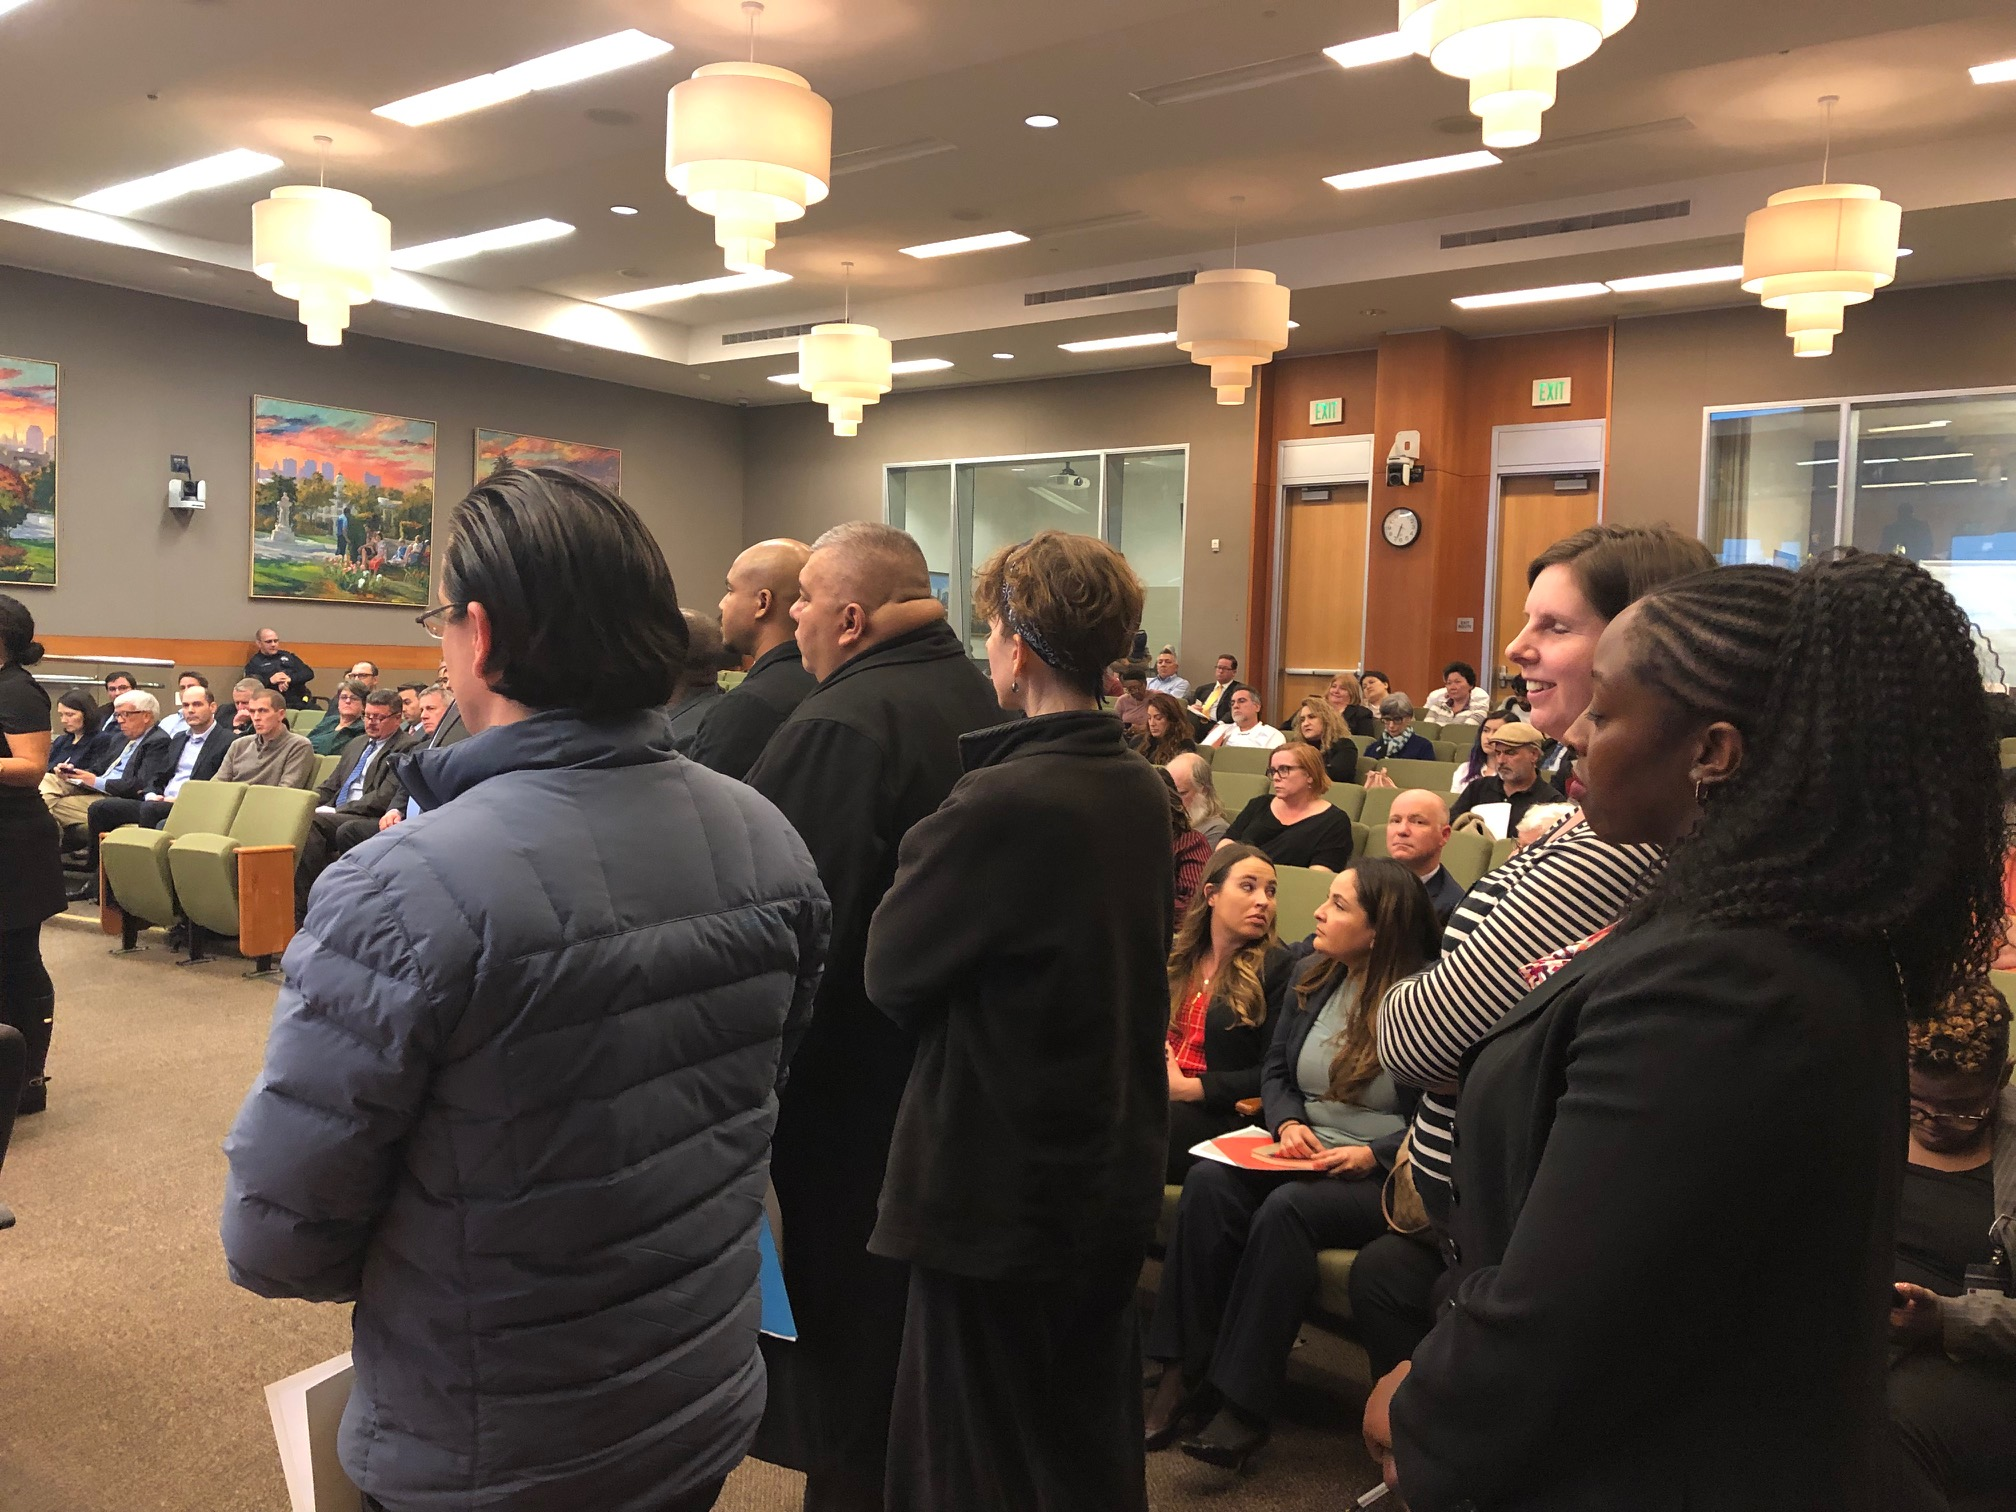 FUEL Network supporters line up to speak at the Sacramento City Council meeting on Dec. 11, 2018.